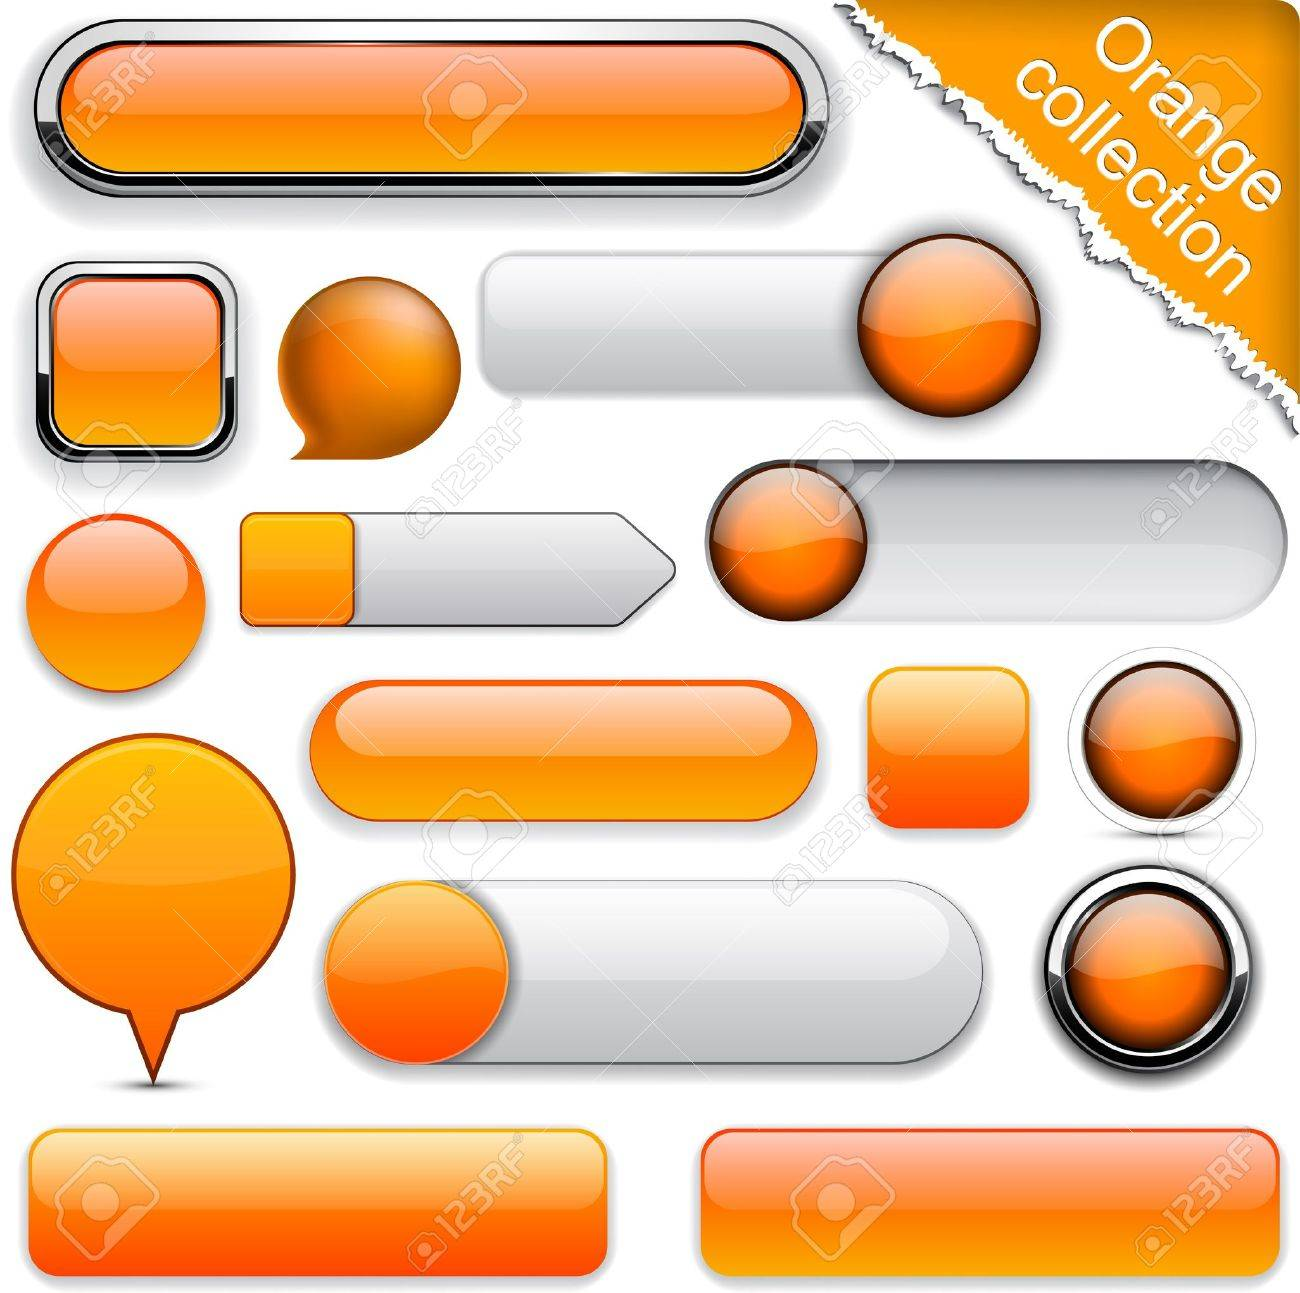 Blank orange web buttons for website or app. Stock Vector - 11577816